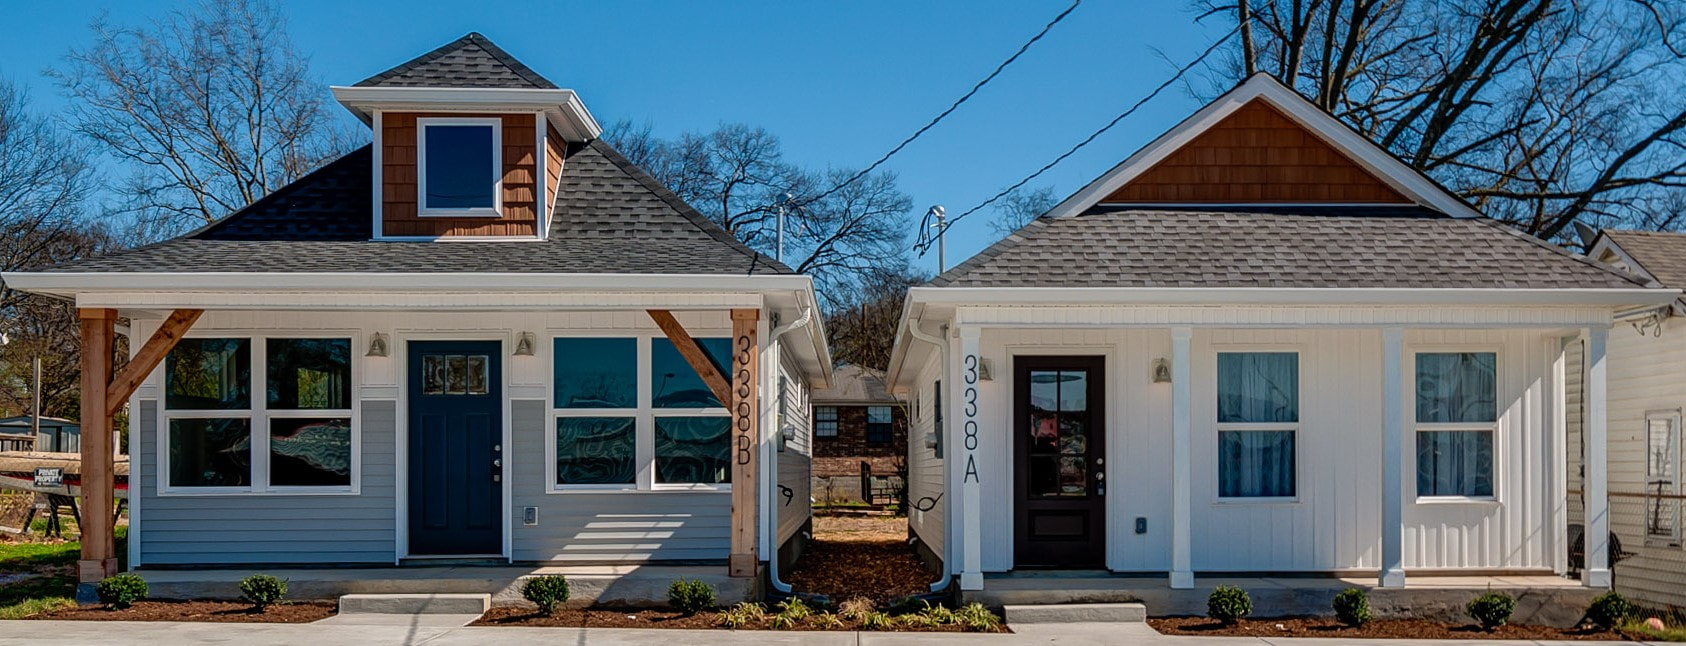 Kudzu Homes - New Construction & Renovated Urban Nashville Homes